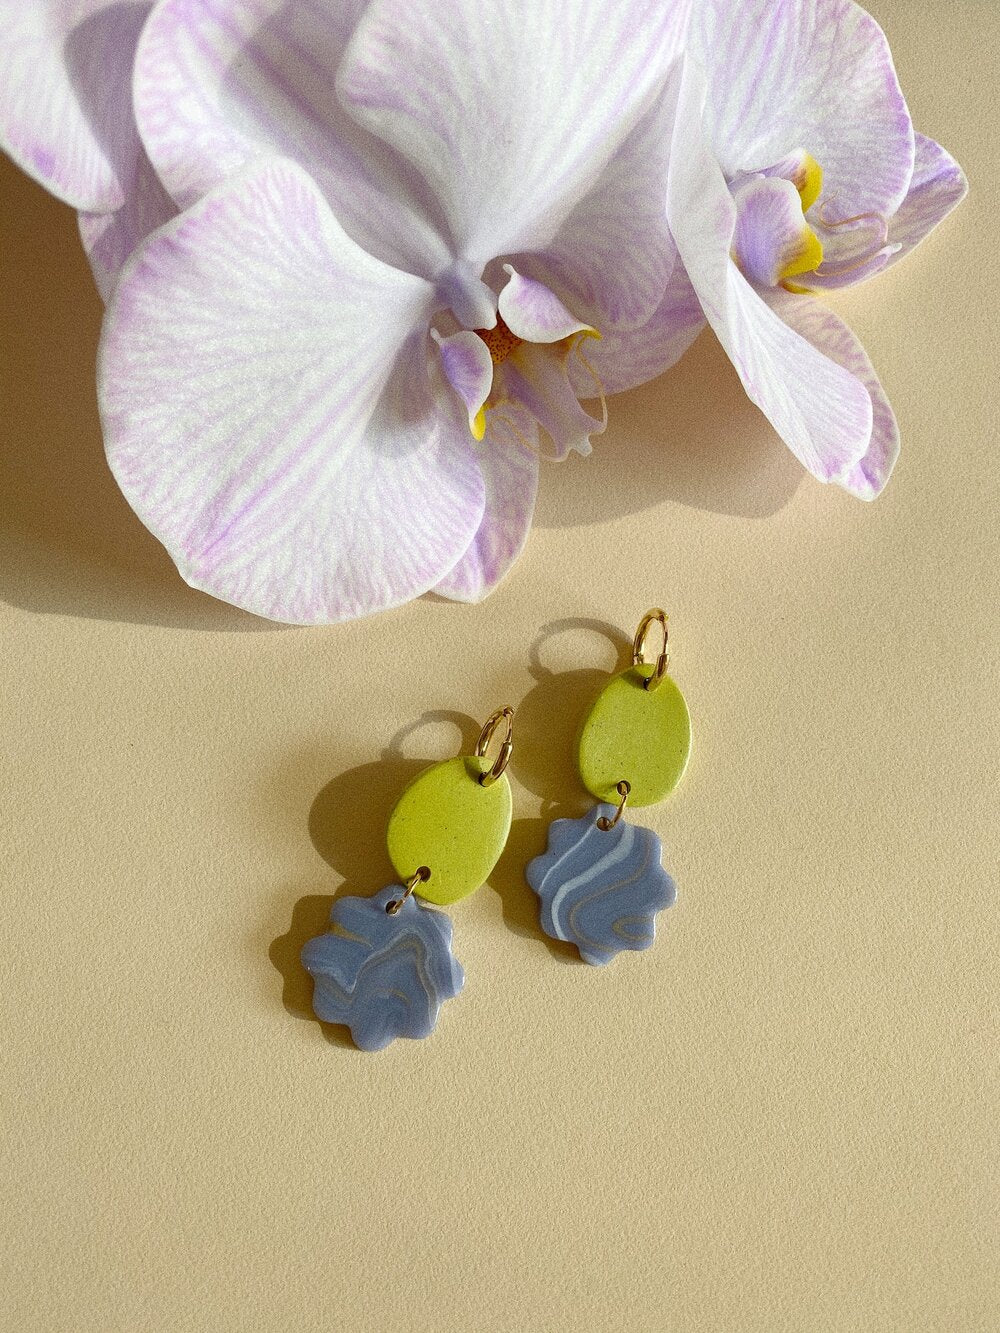 Aacute Belong Earrings - Violet Agate and Zest